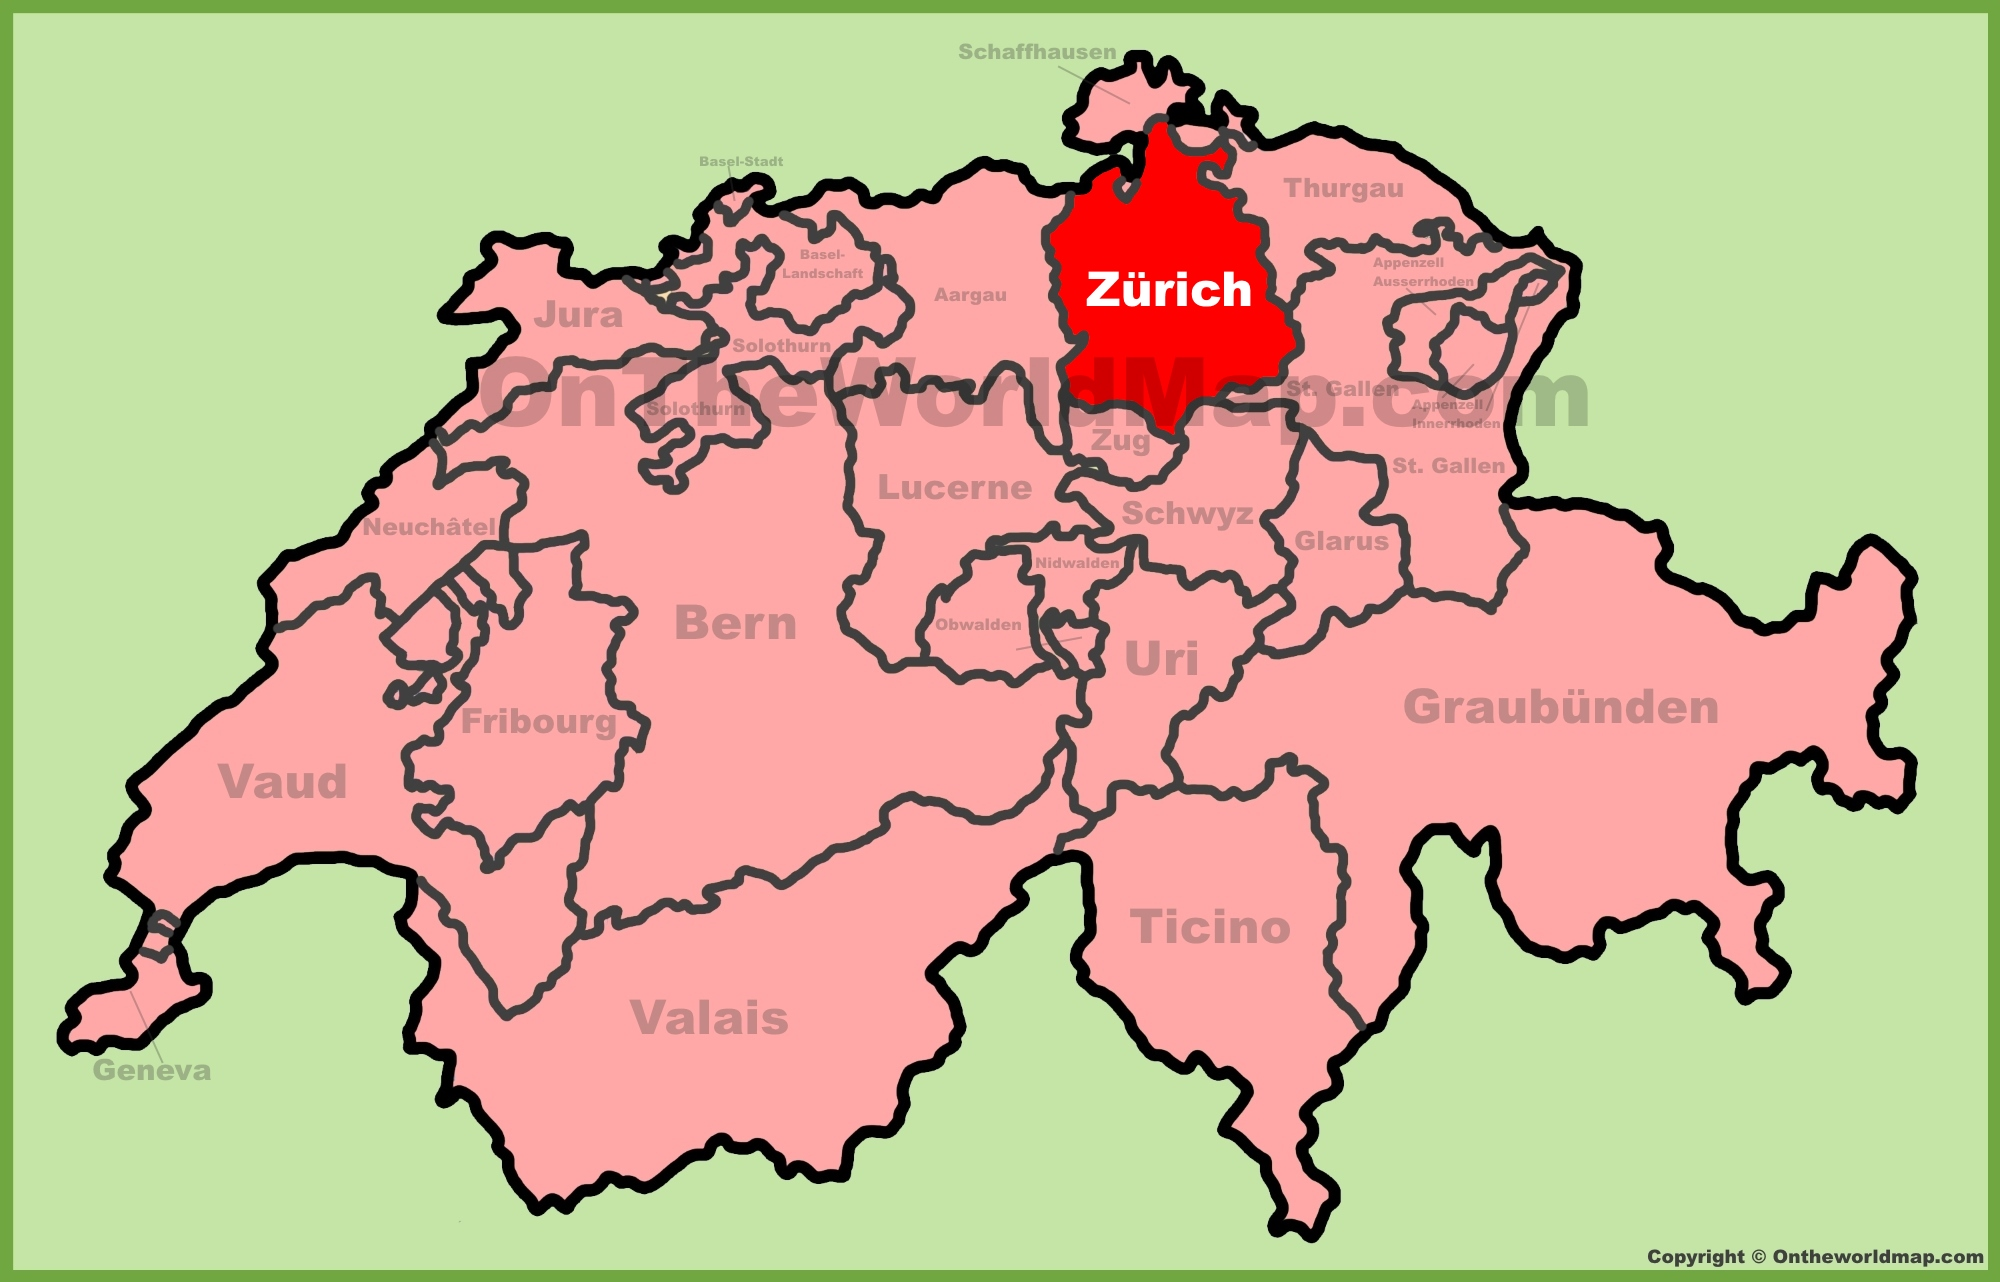 Canton of Zrich location on the Switzerland map